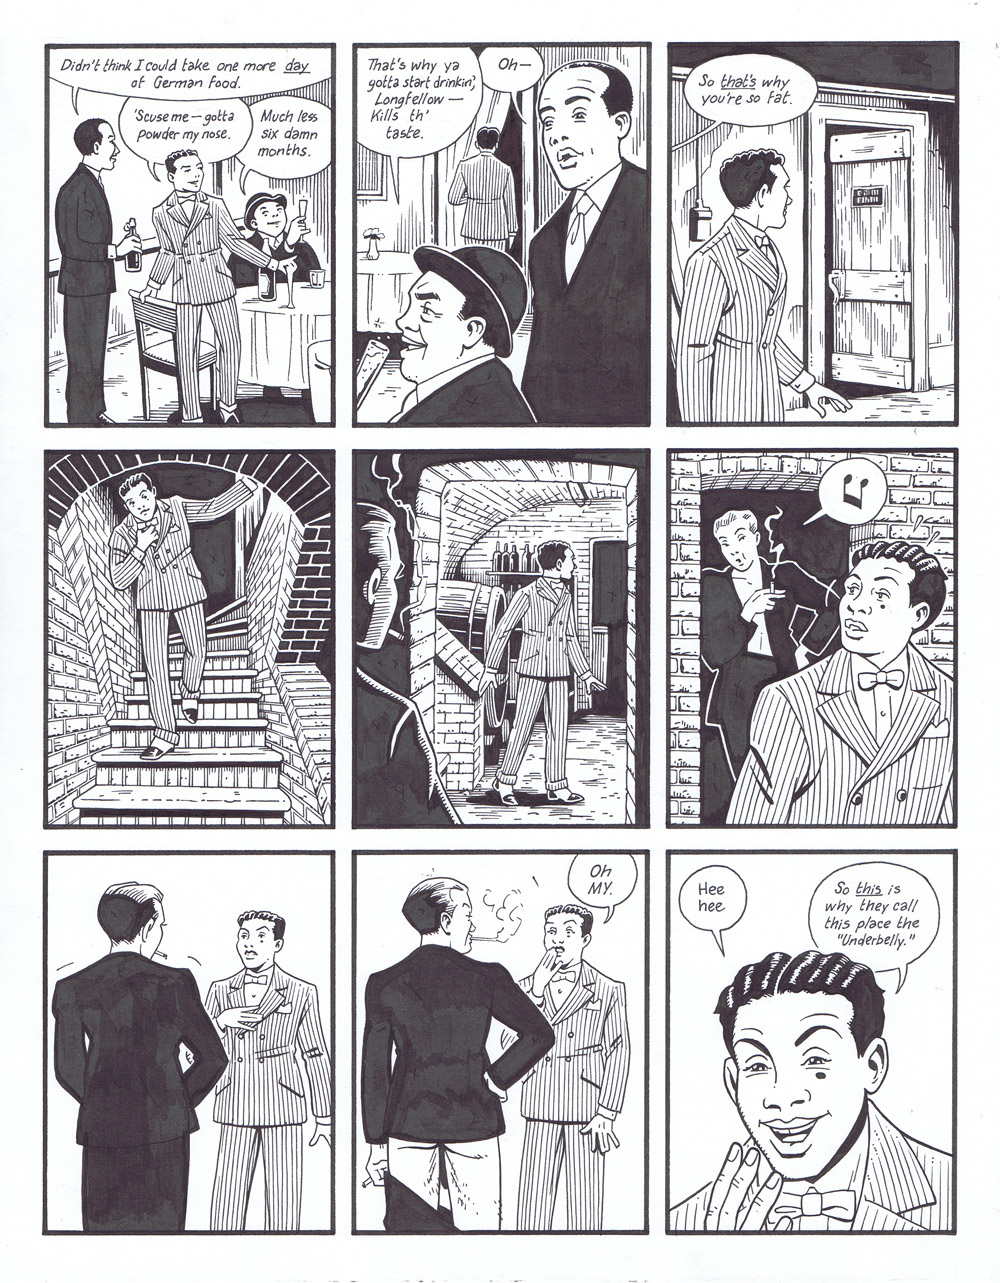 Berlin: Book 2 - page 150